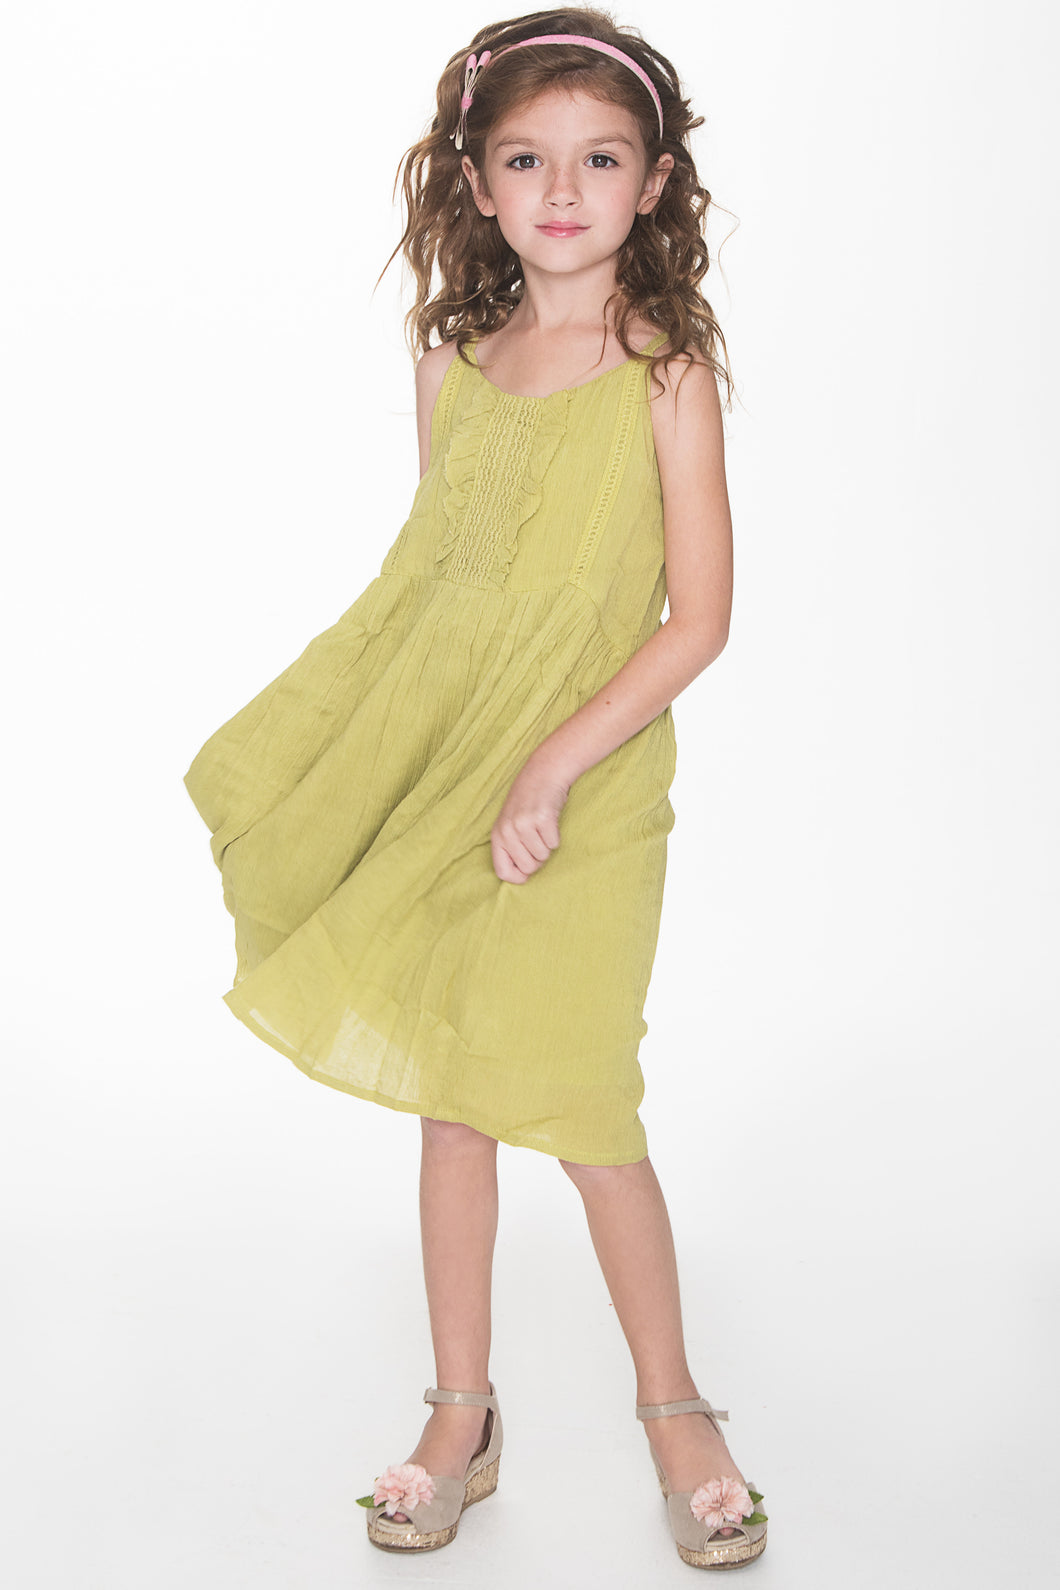 Green Swing Dress - Kids Wholesale Boutique Clothing, Dress - Girls Dresses, Yo Baby Wholesale - Yo Baby